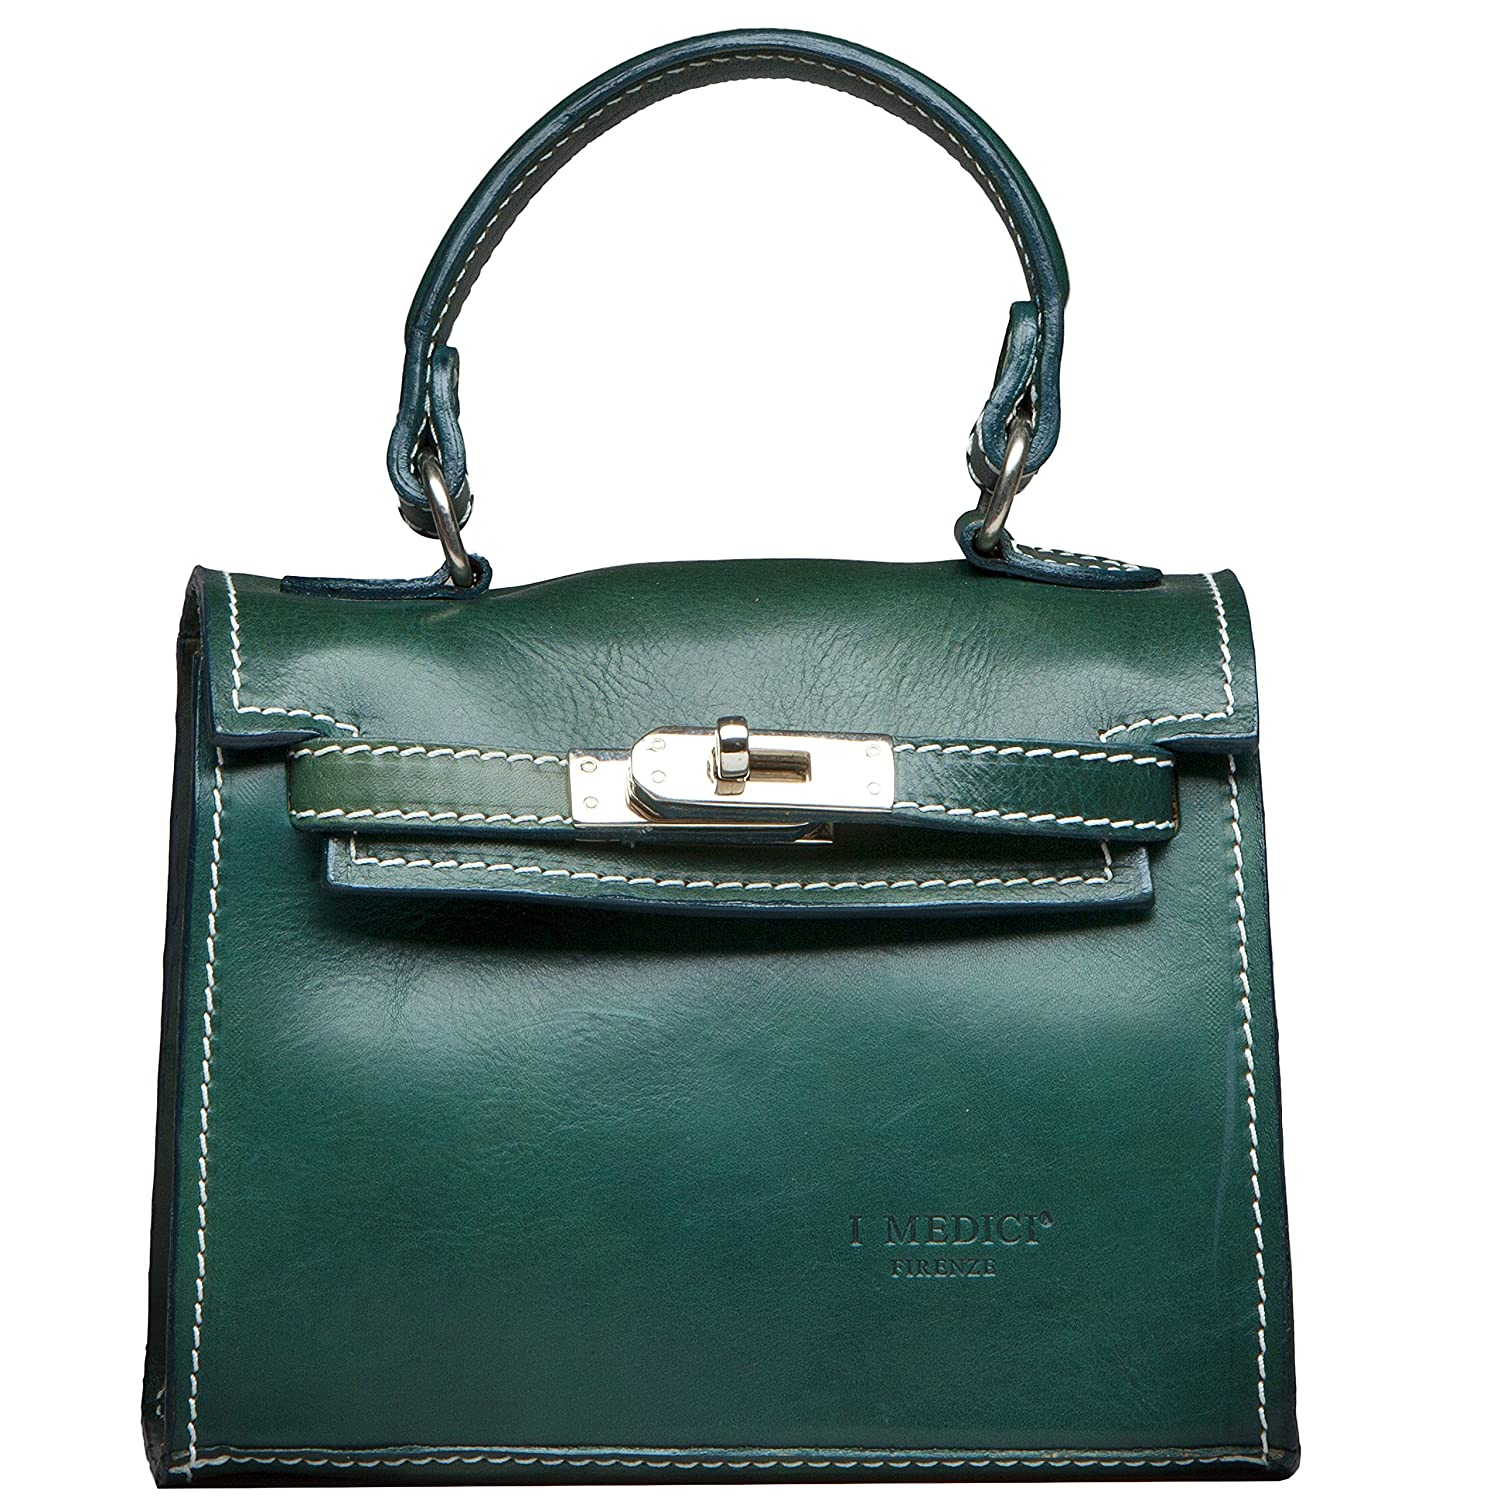 Messenger Bag by I Medici That are Directly Imported from Italy Green Bag 1900